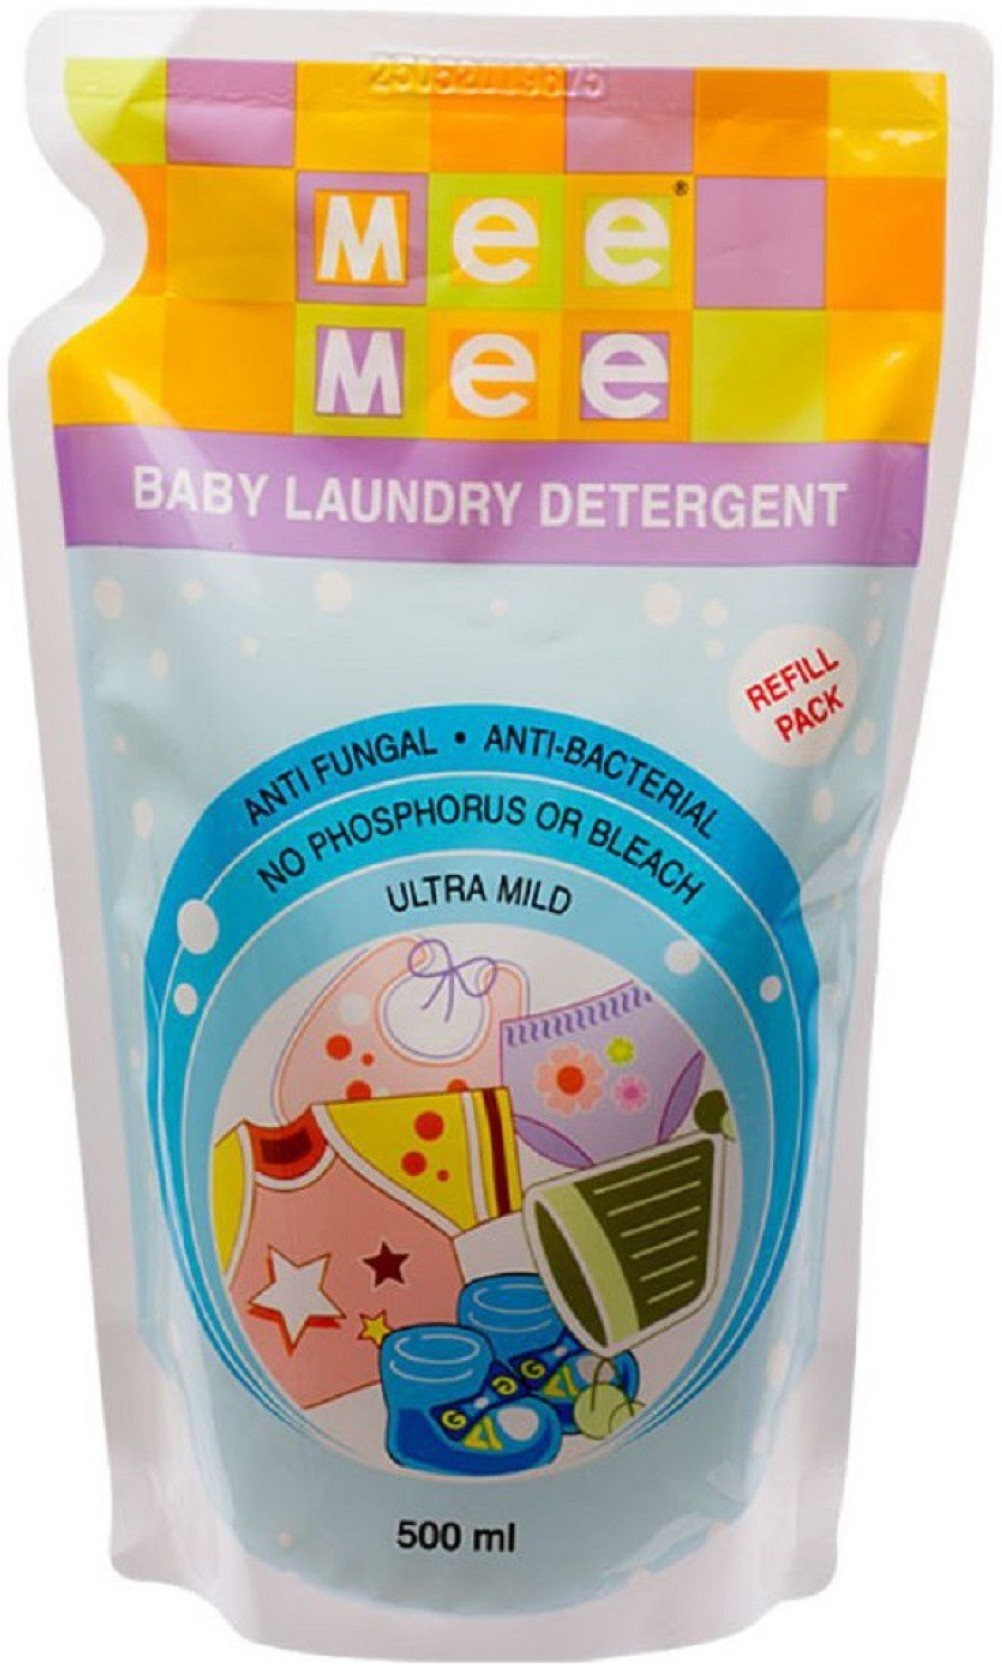 Meemee Baby Safe Laundry Detergents 500 Ml Buy Products In Pure Liquid Refill 2 Get 3 700 Add To Cart Now